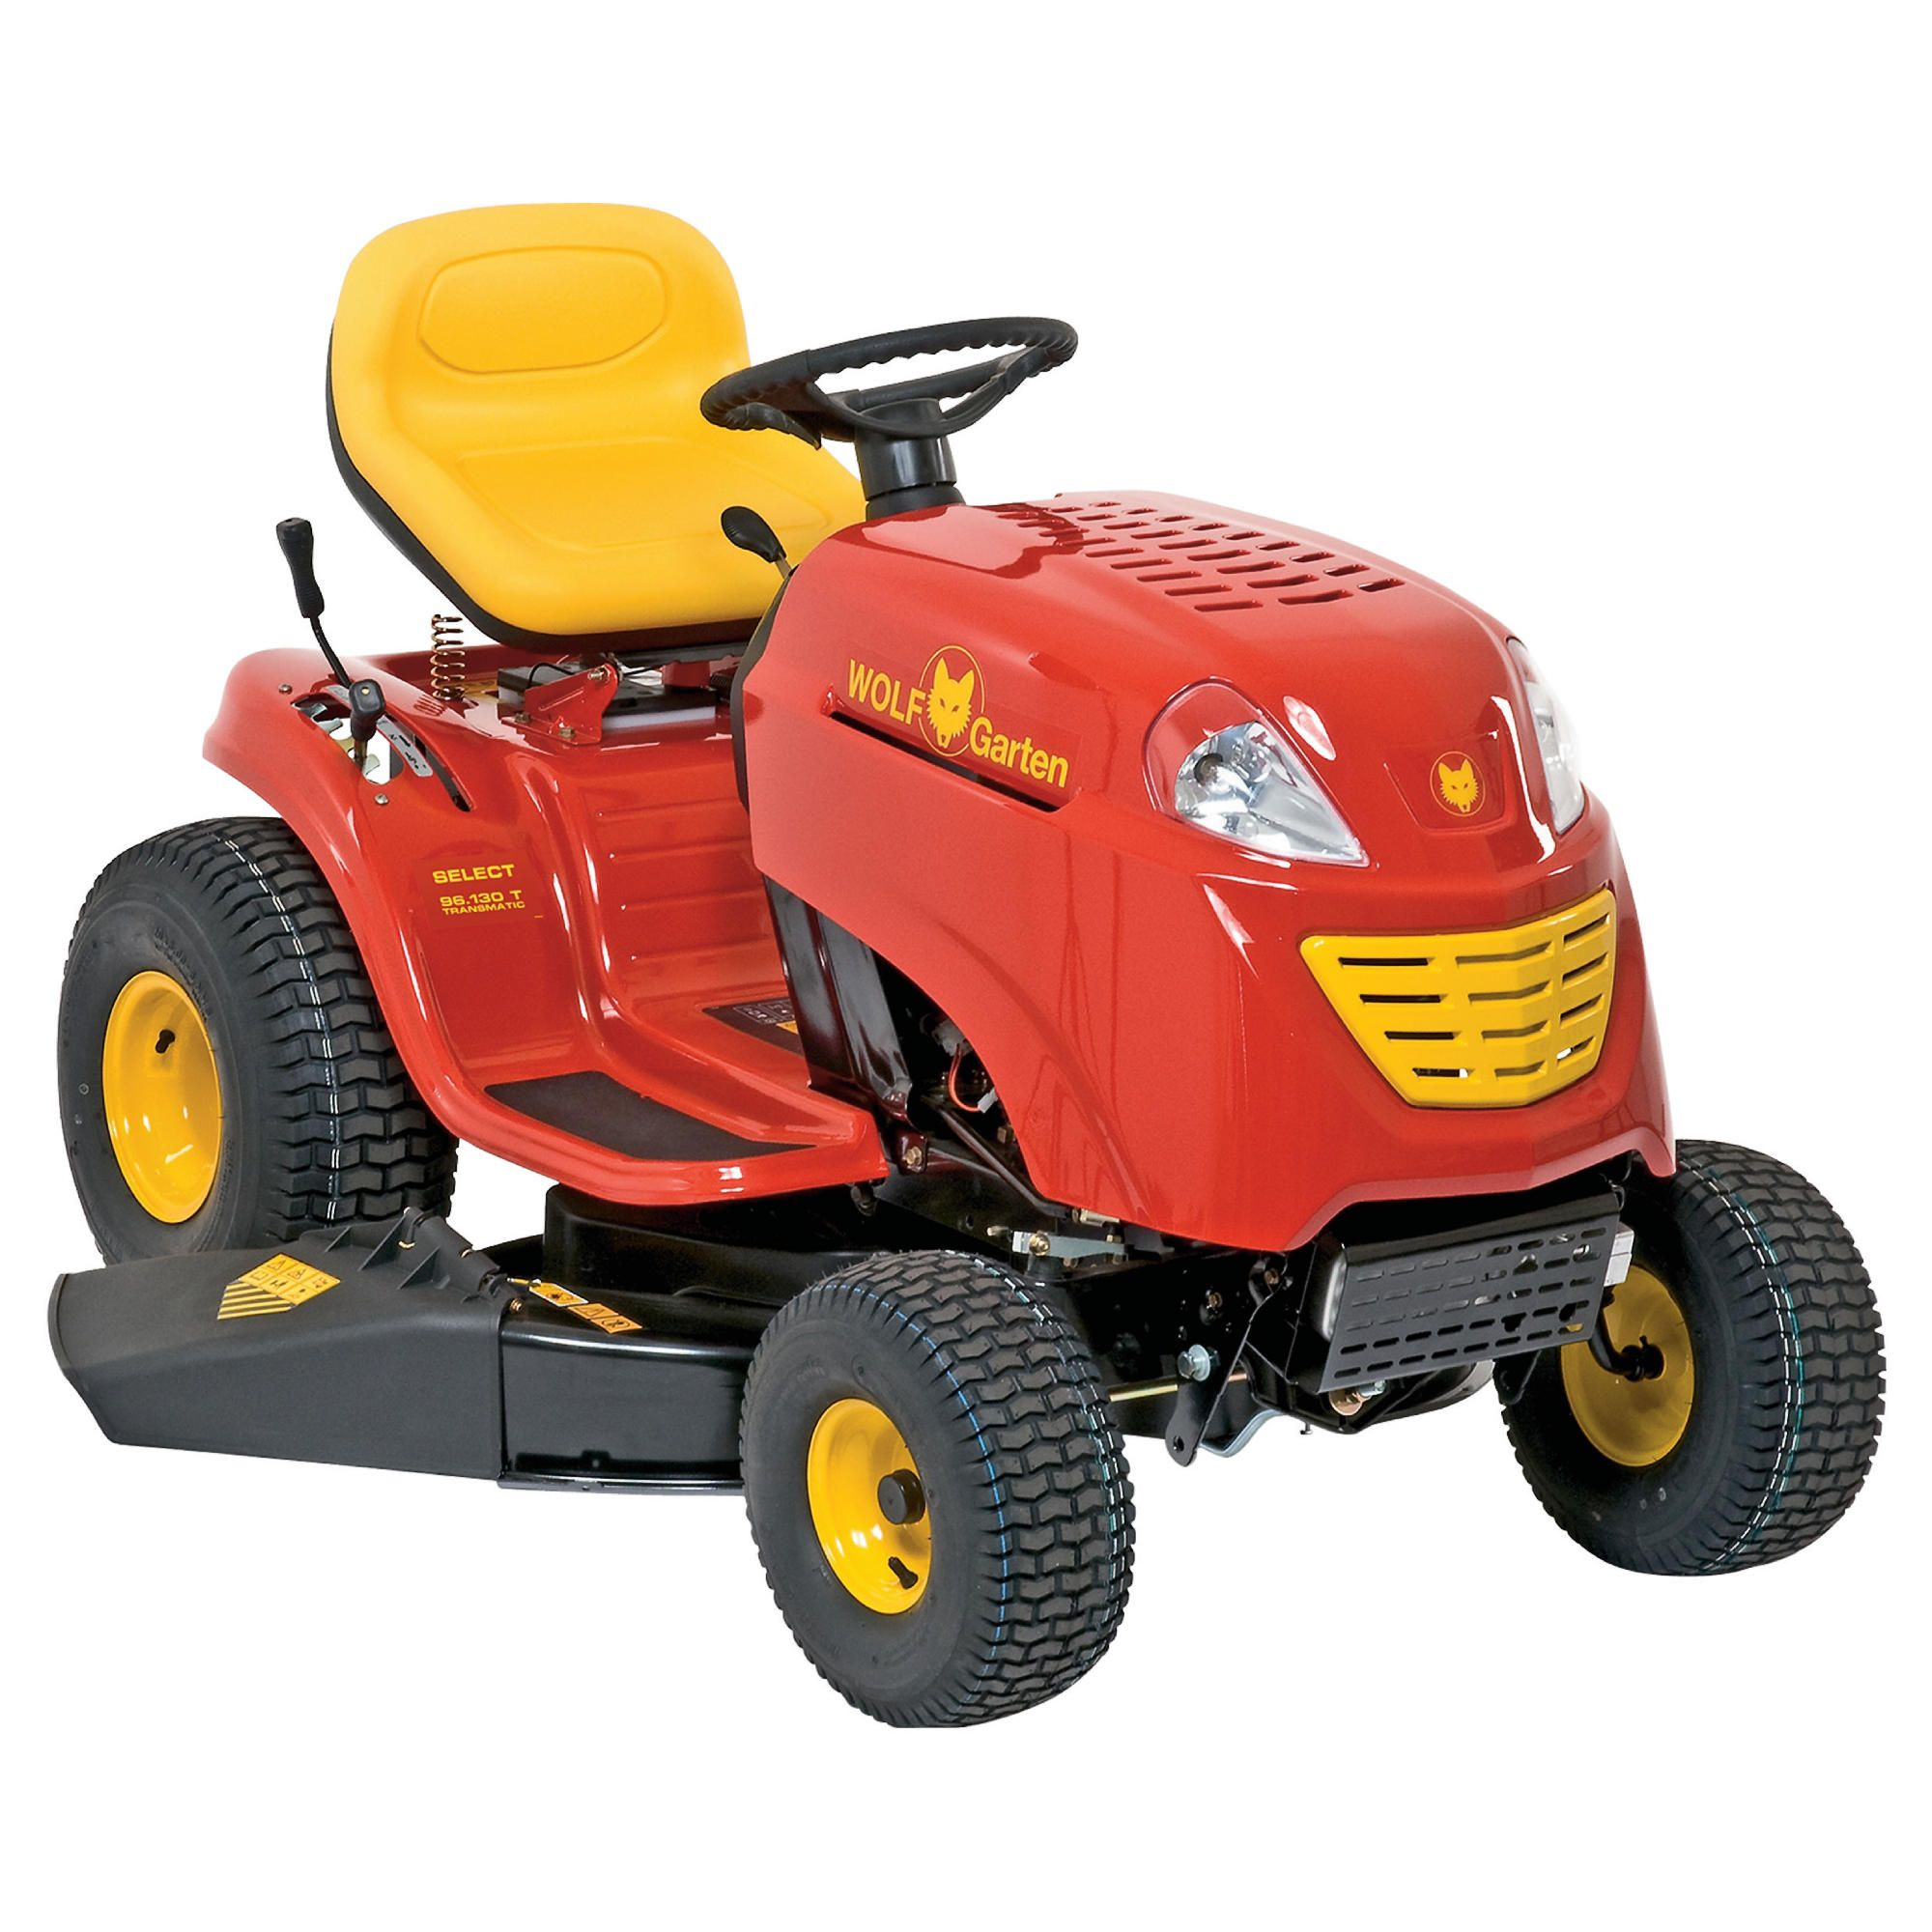 Wolf Select Tractor S96/130T at Tesco Direct